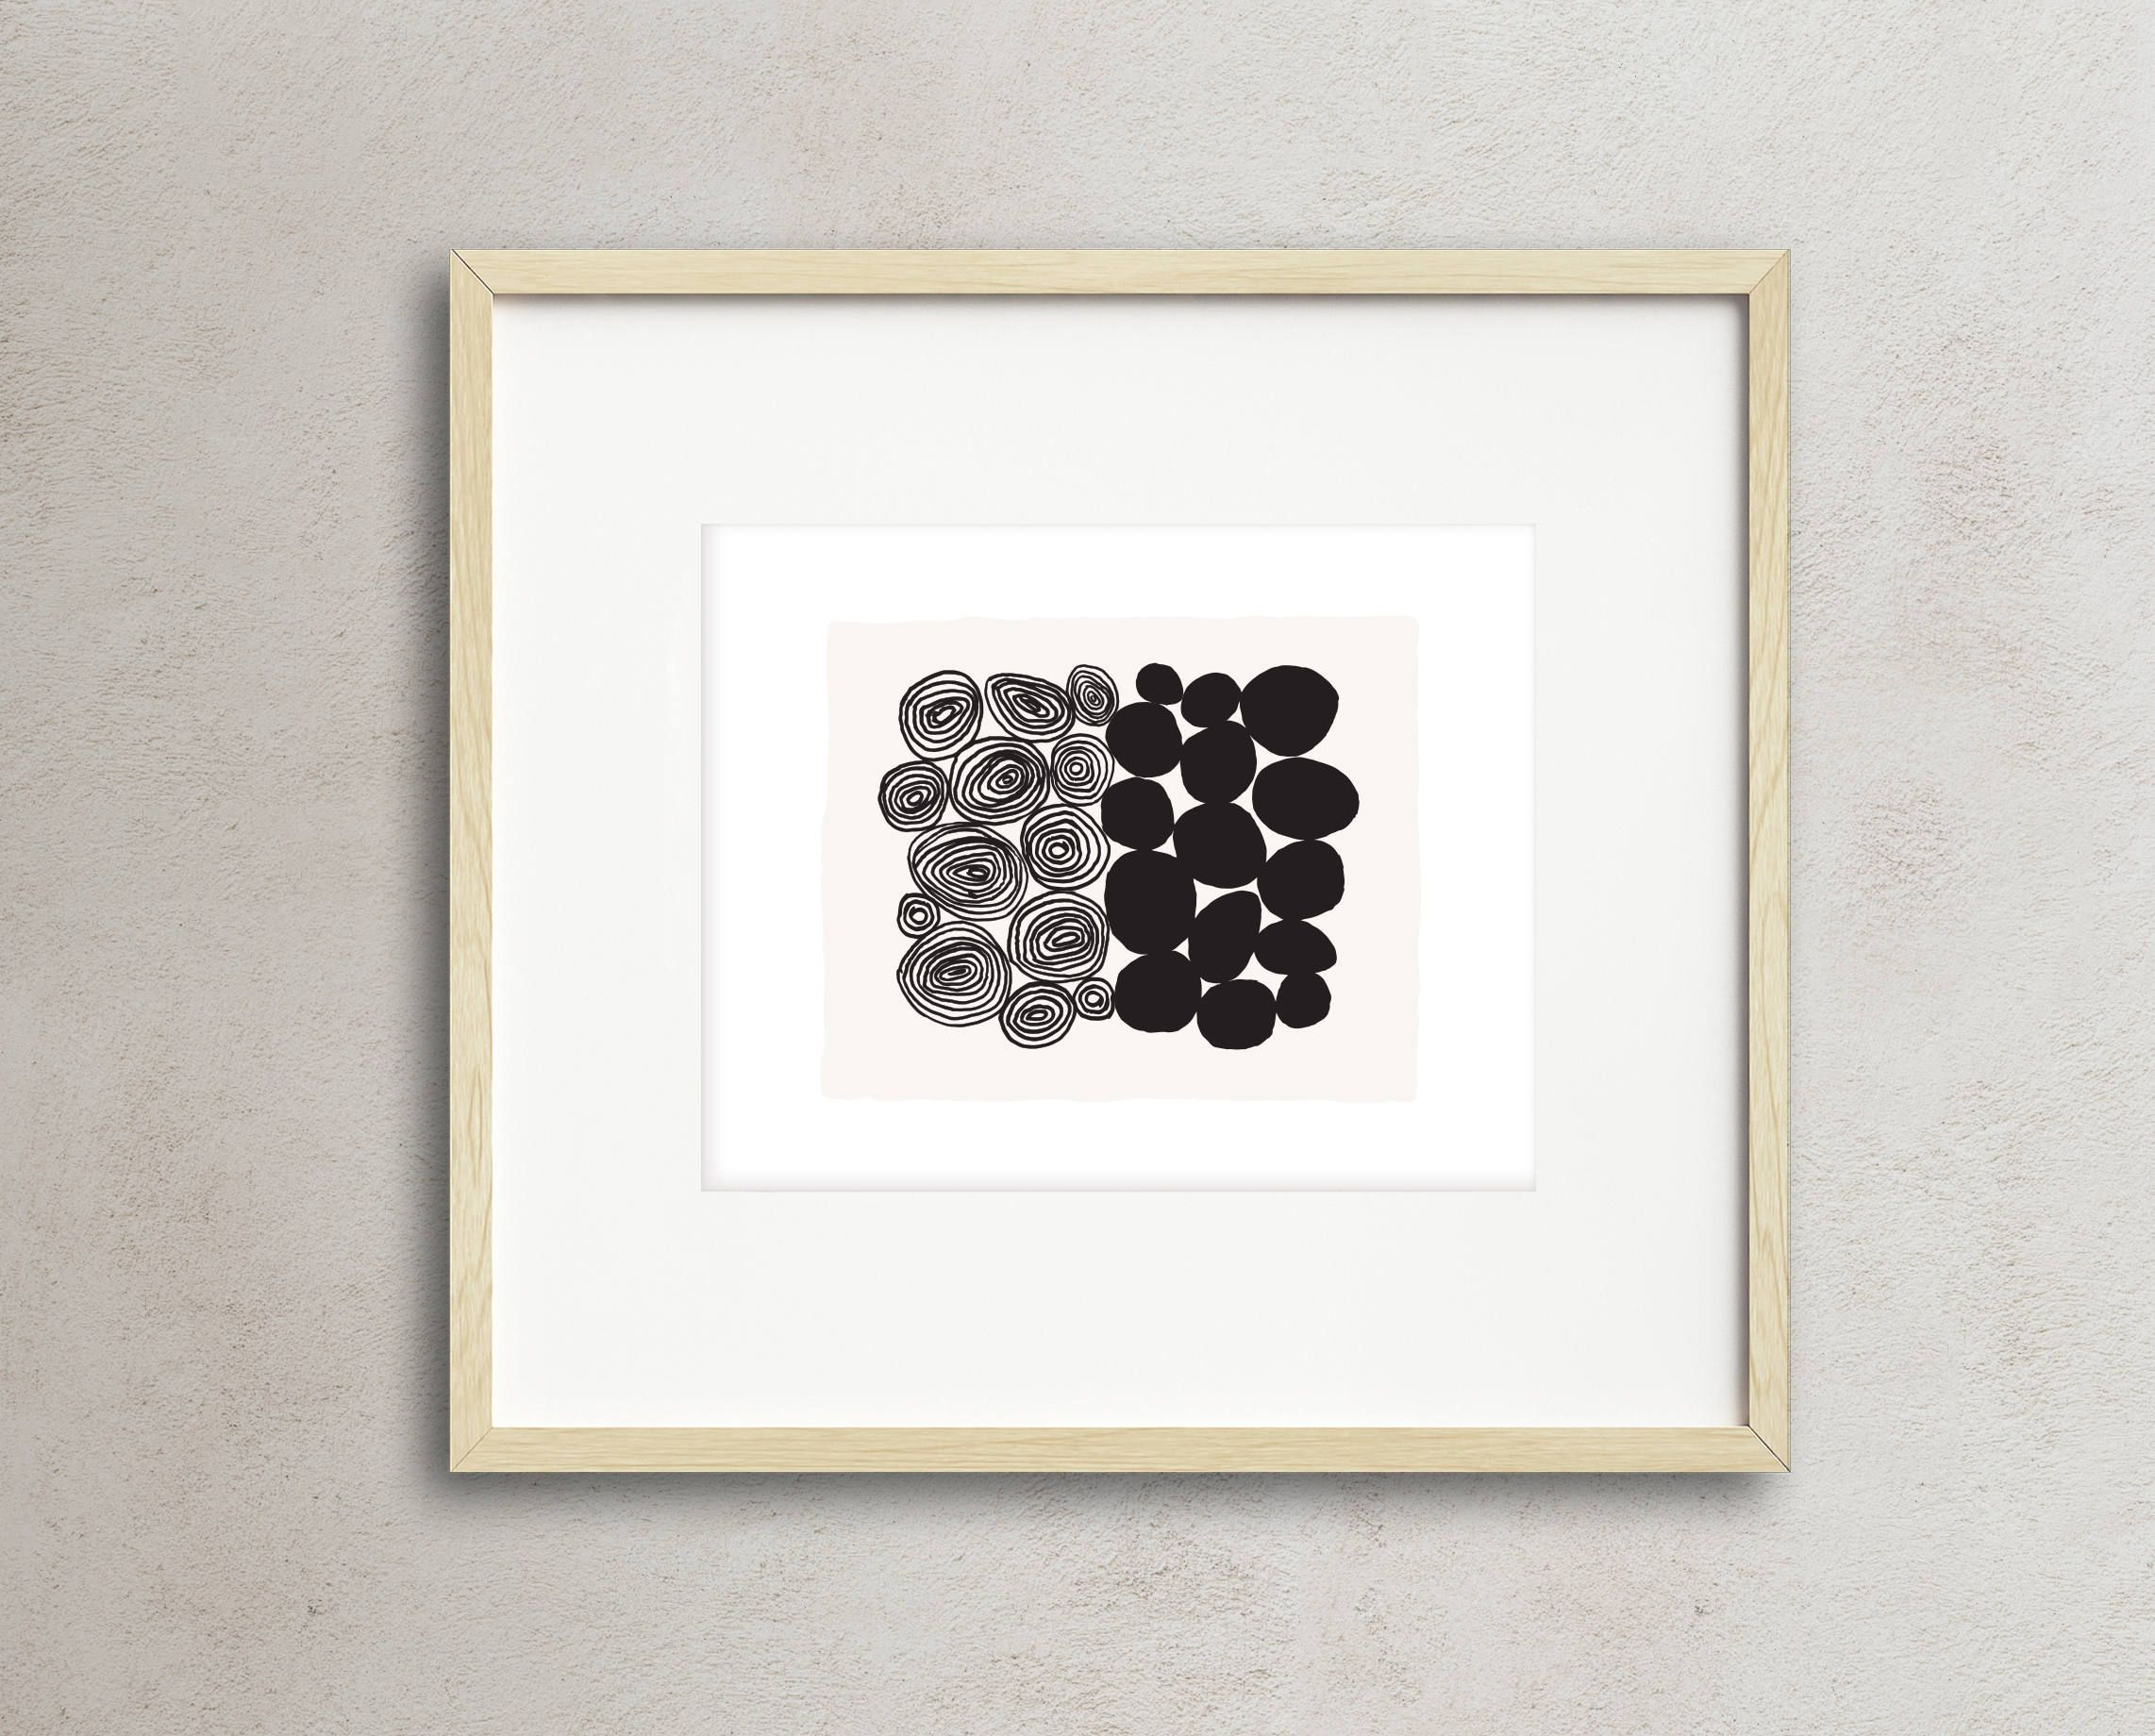 Monochrome Prints Black And White Abstract Wall Art Modern Poster